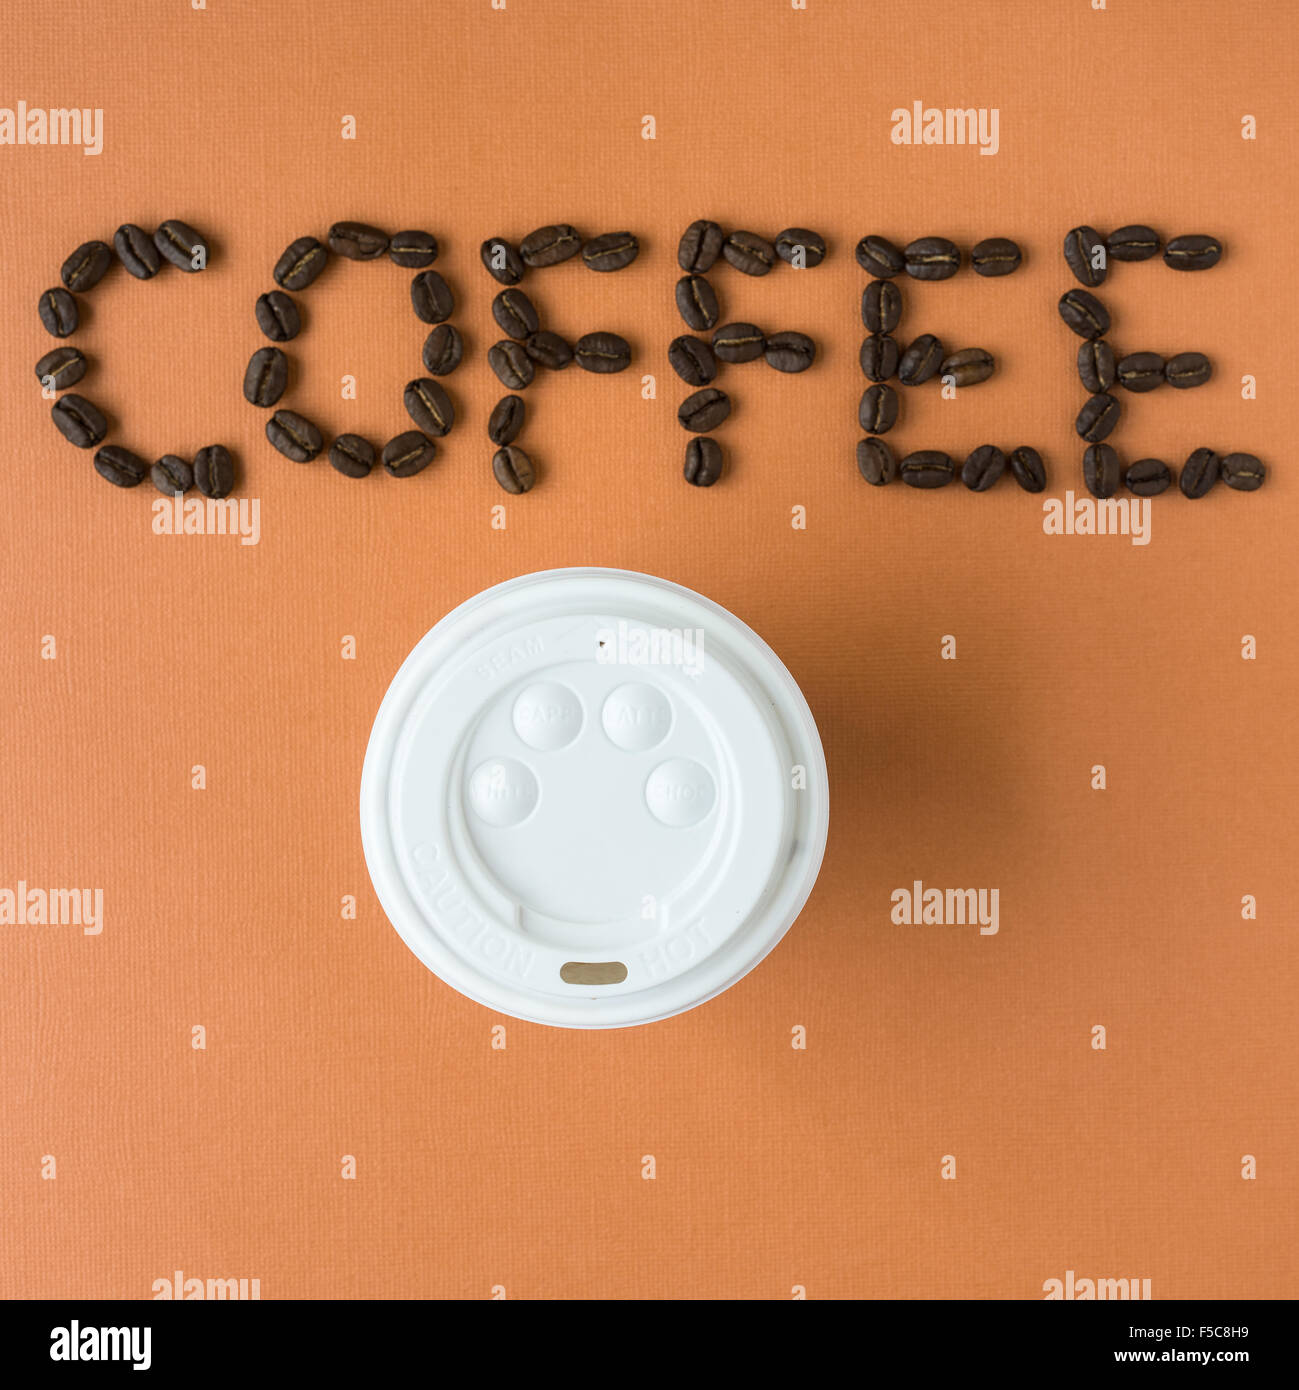 coffee spelled out with roasted coffee beans, on orange background Stock Photo